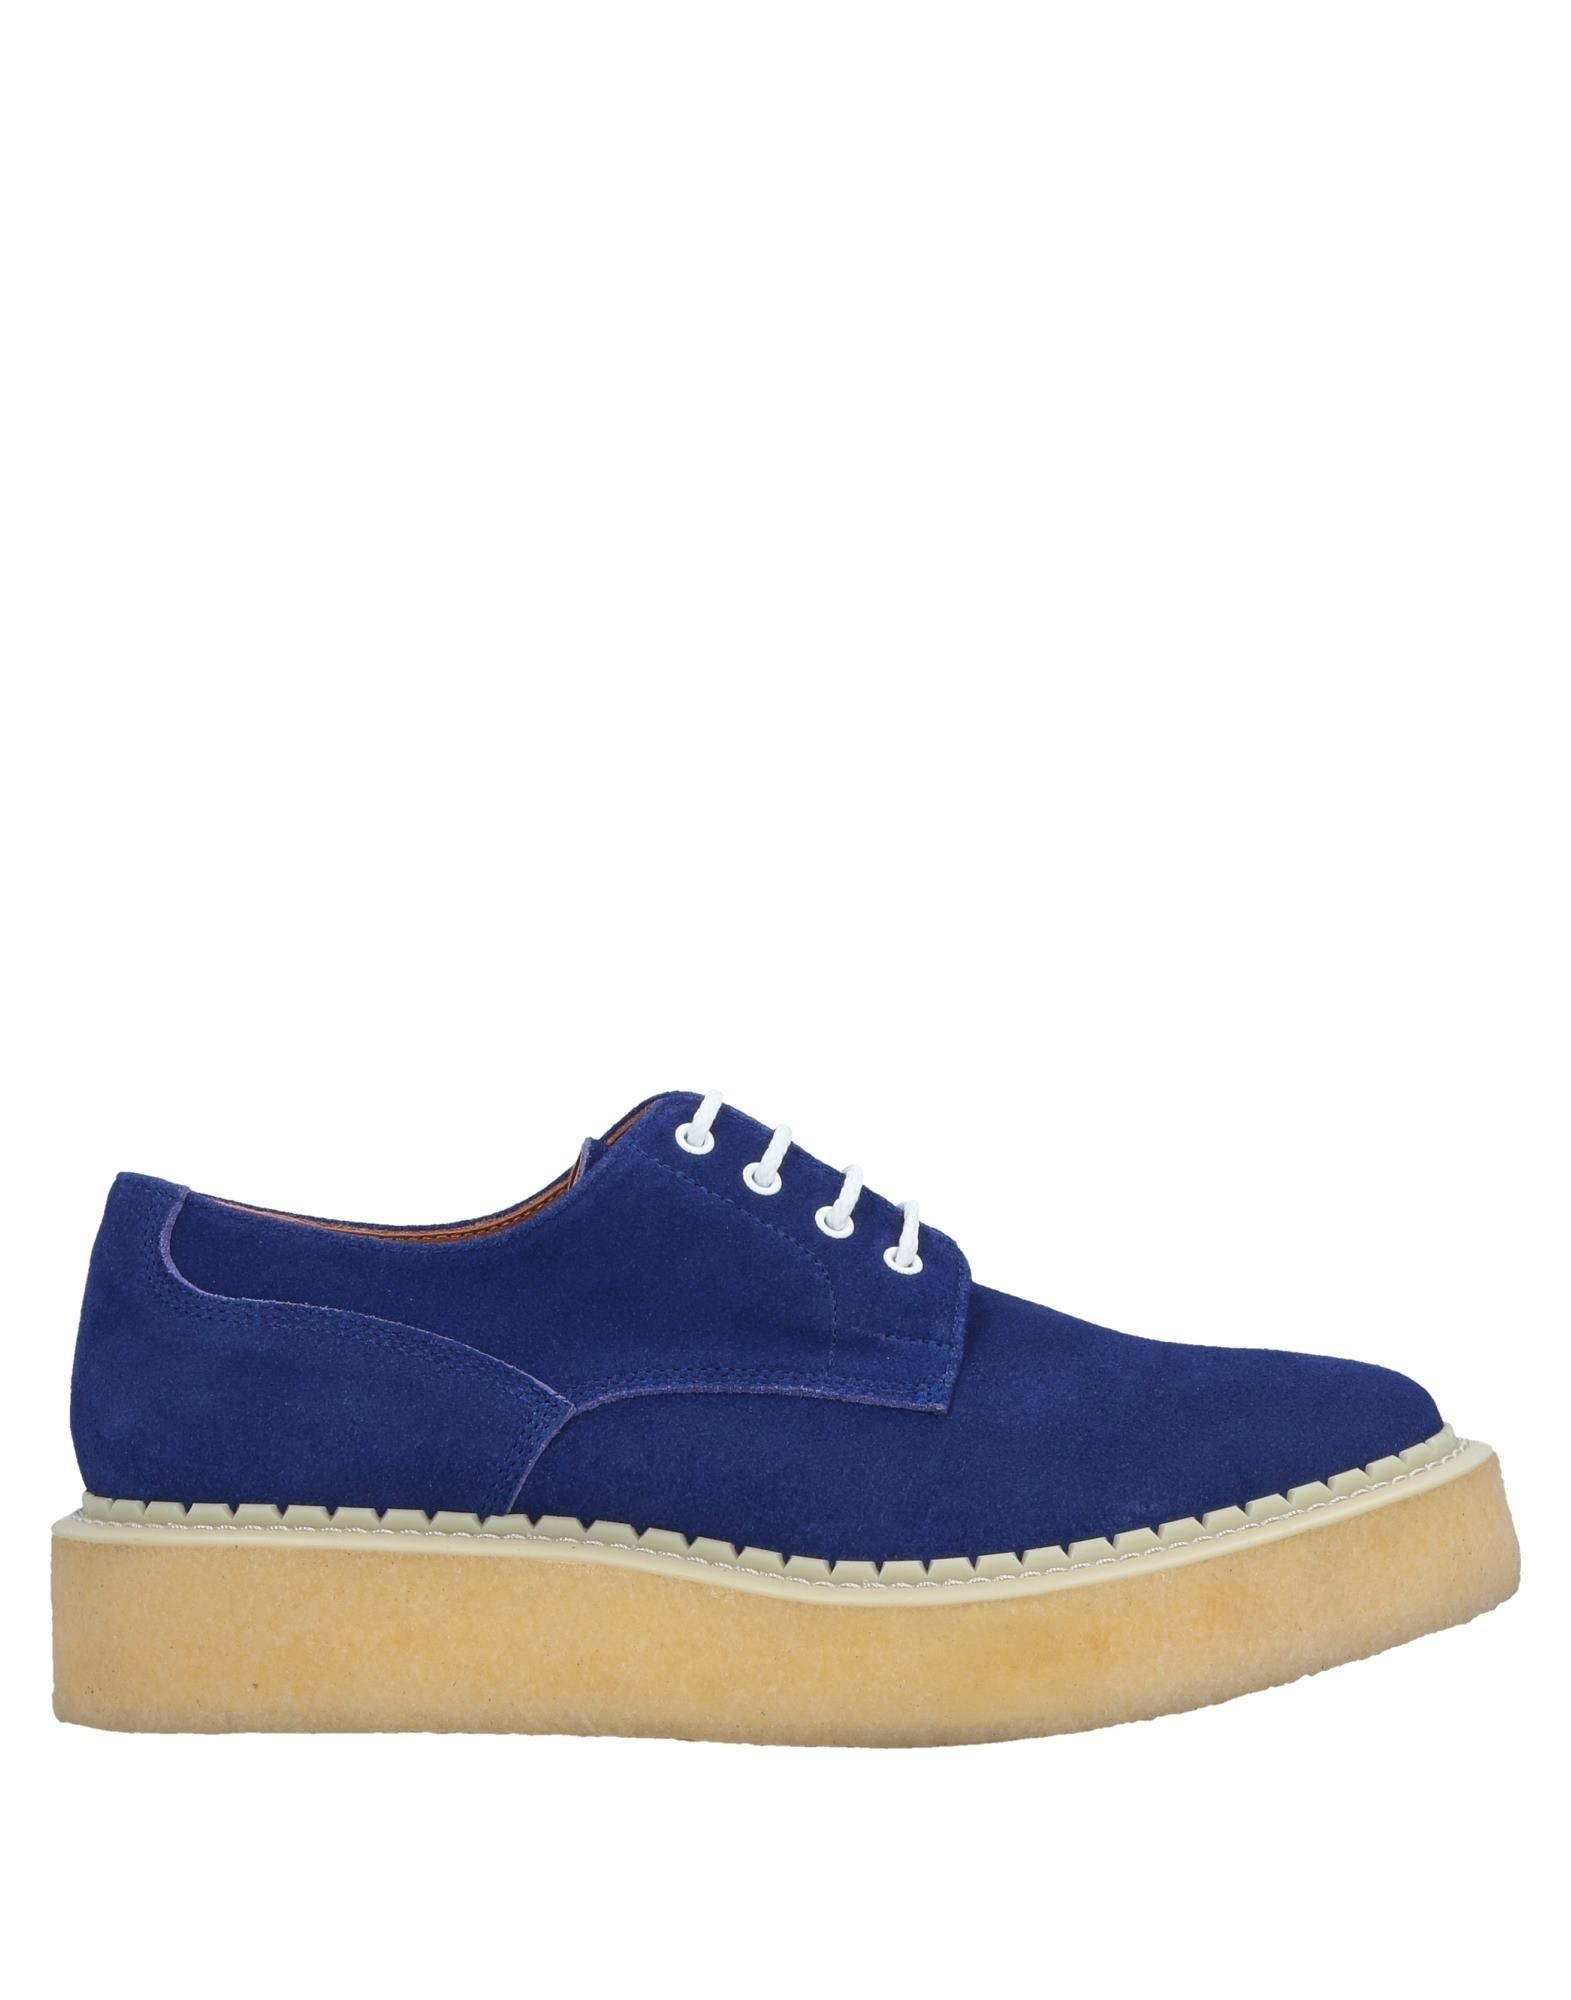 GANRYU Laced Shoes in Bright Blue